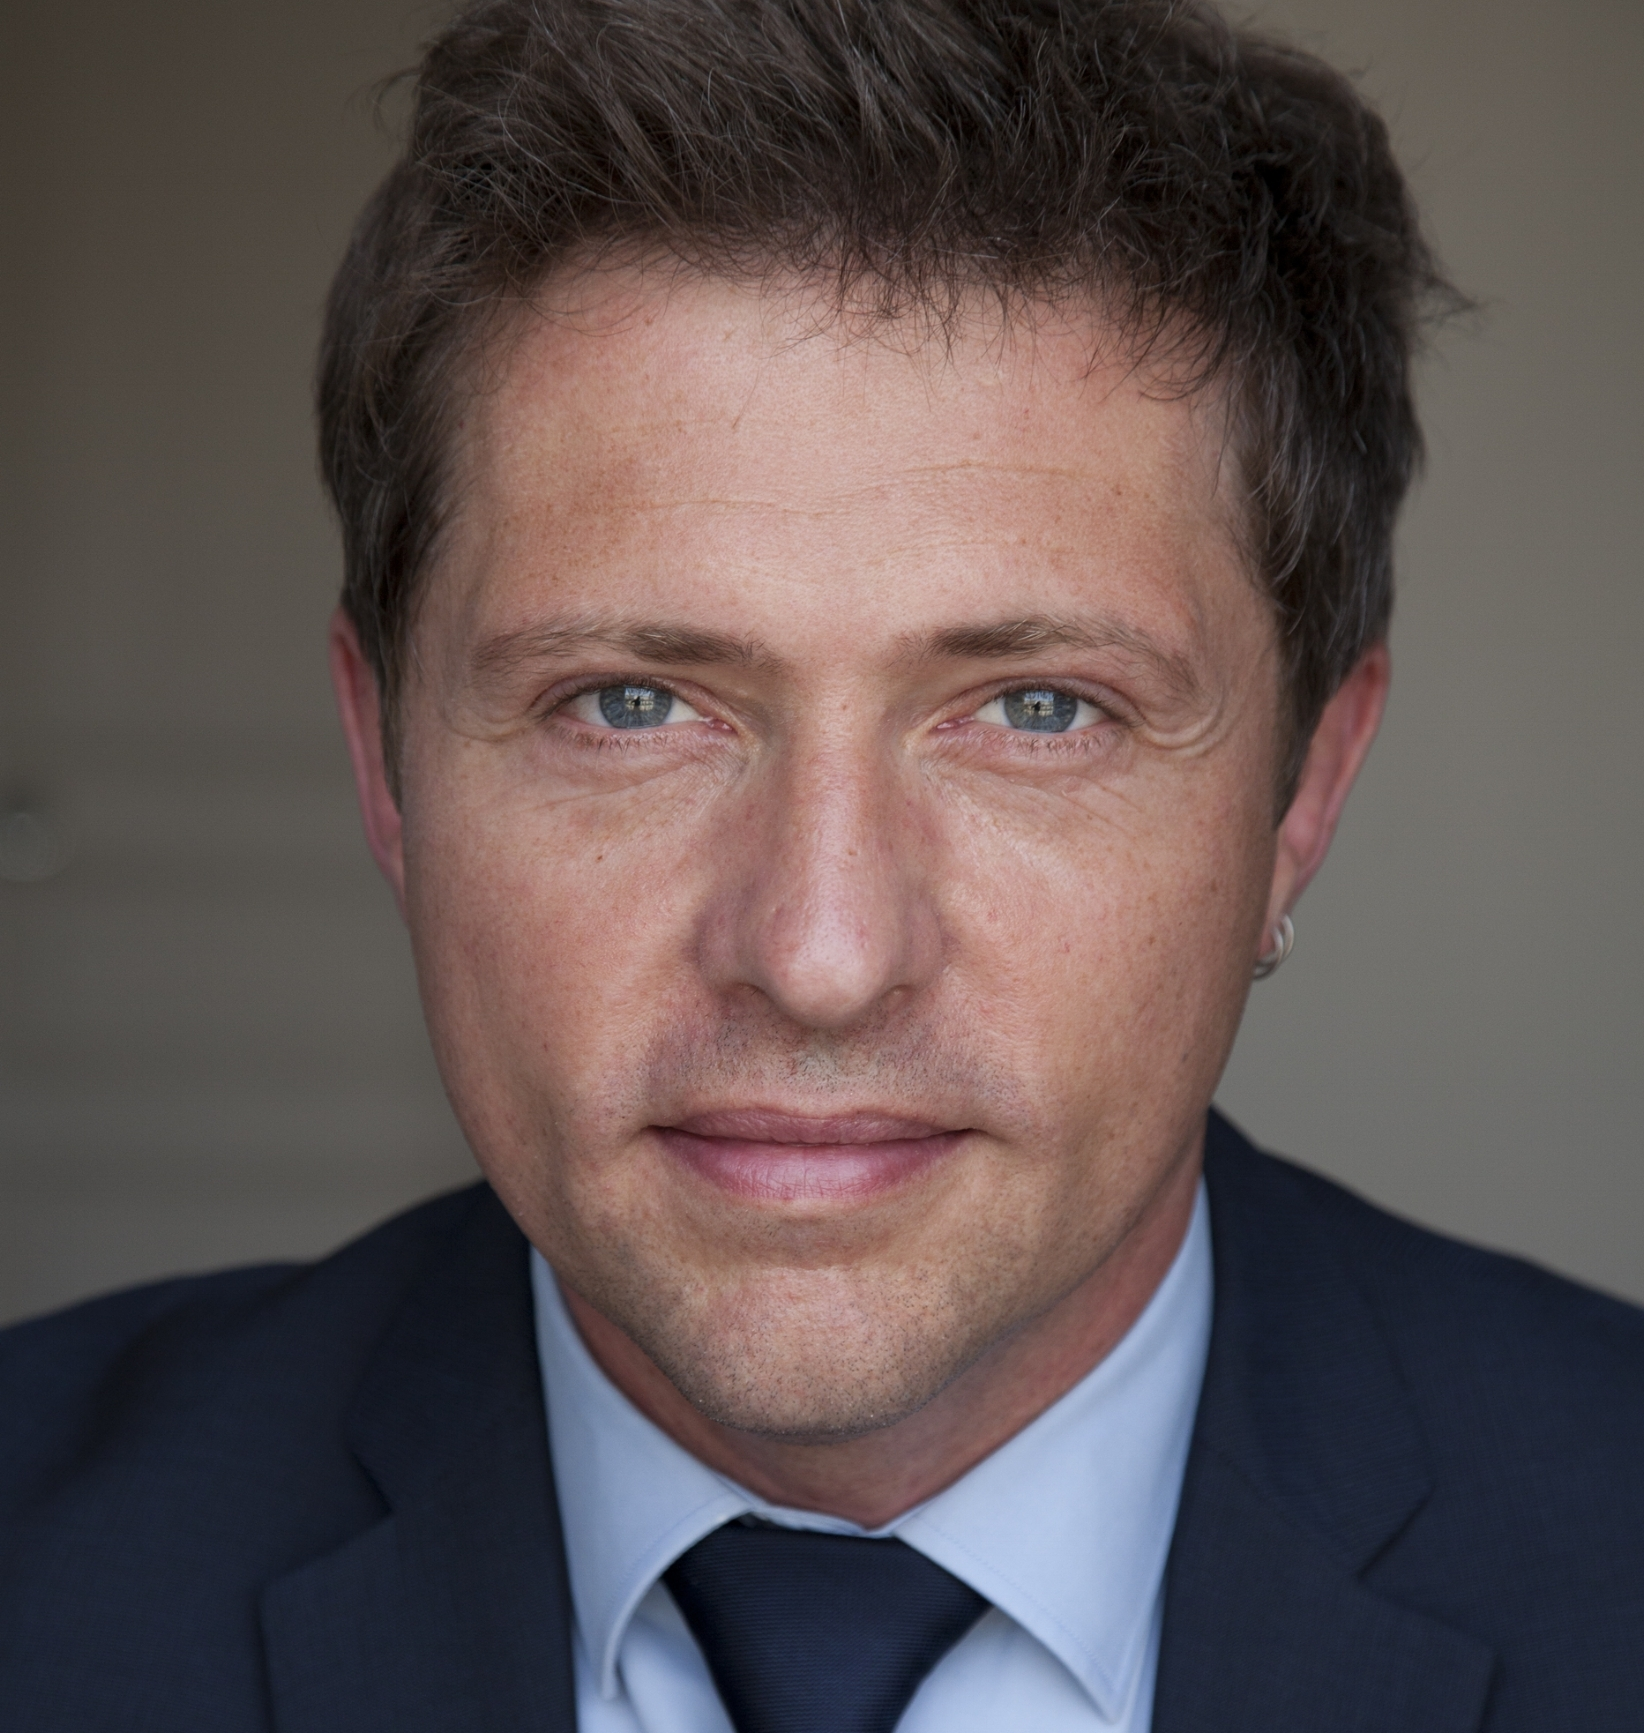 Sébastien Maire - City of Paris, chief resilience officer